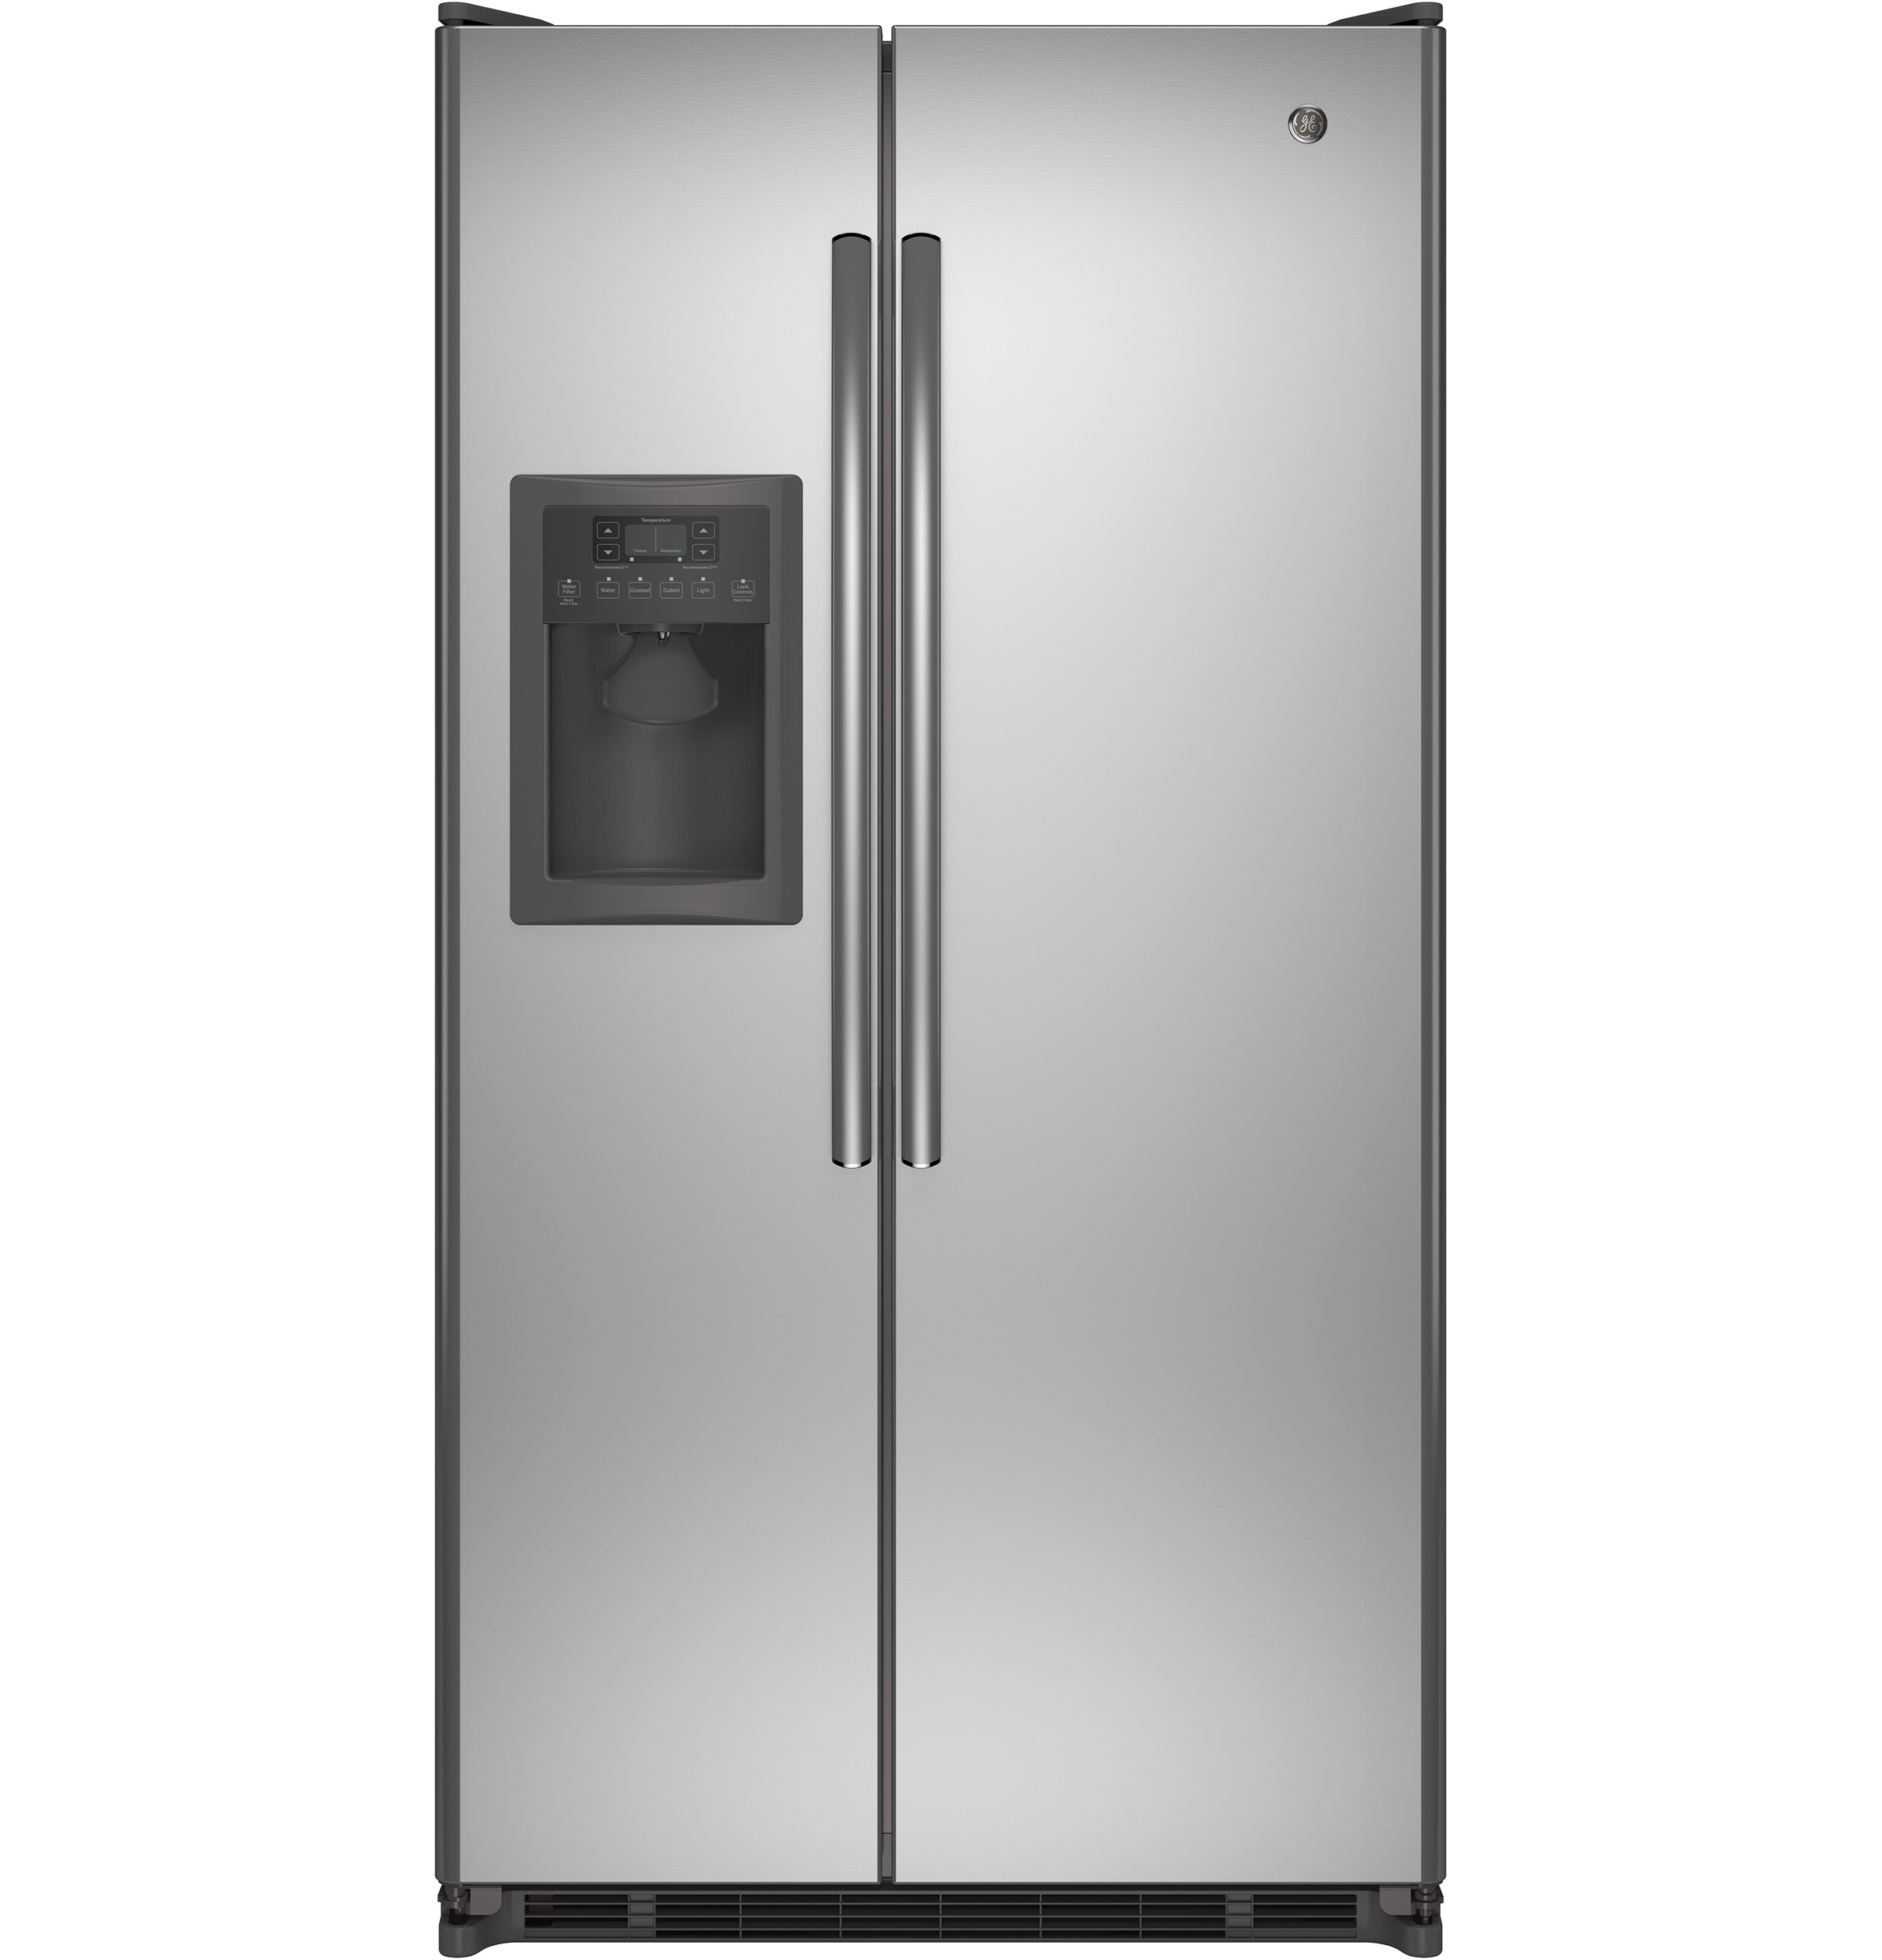 GE Appliances 24.7 cu. ft. Side-by-Side Refrigerator - Stainless Steel